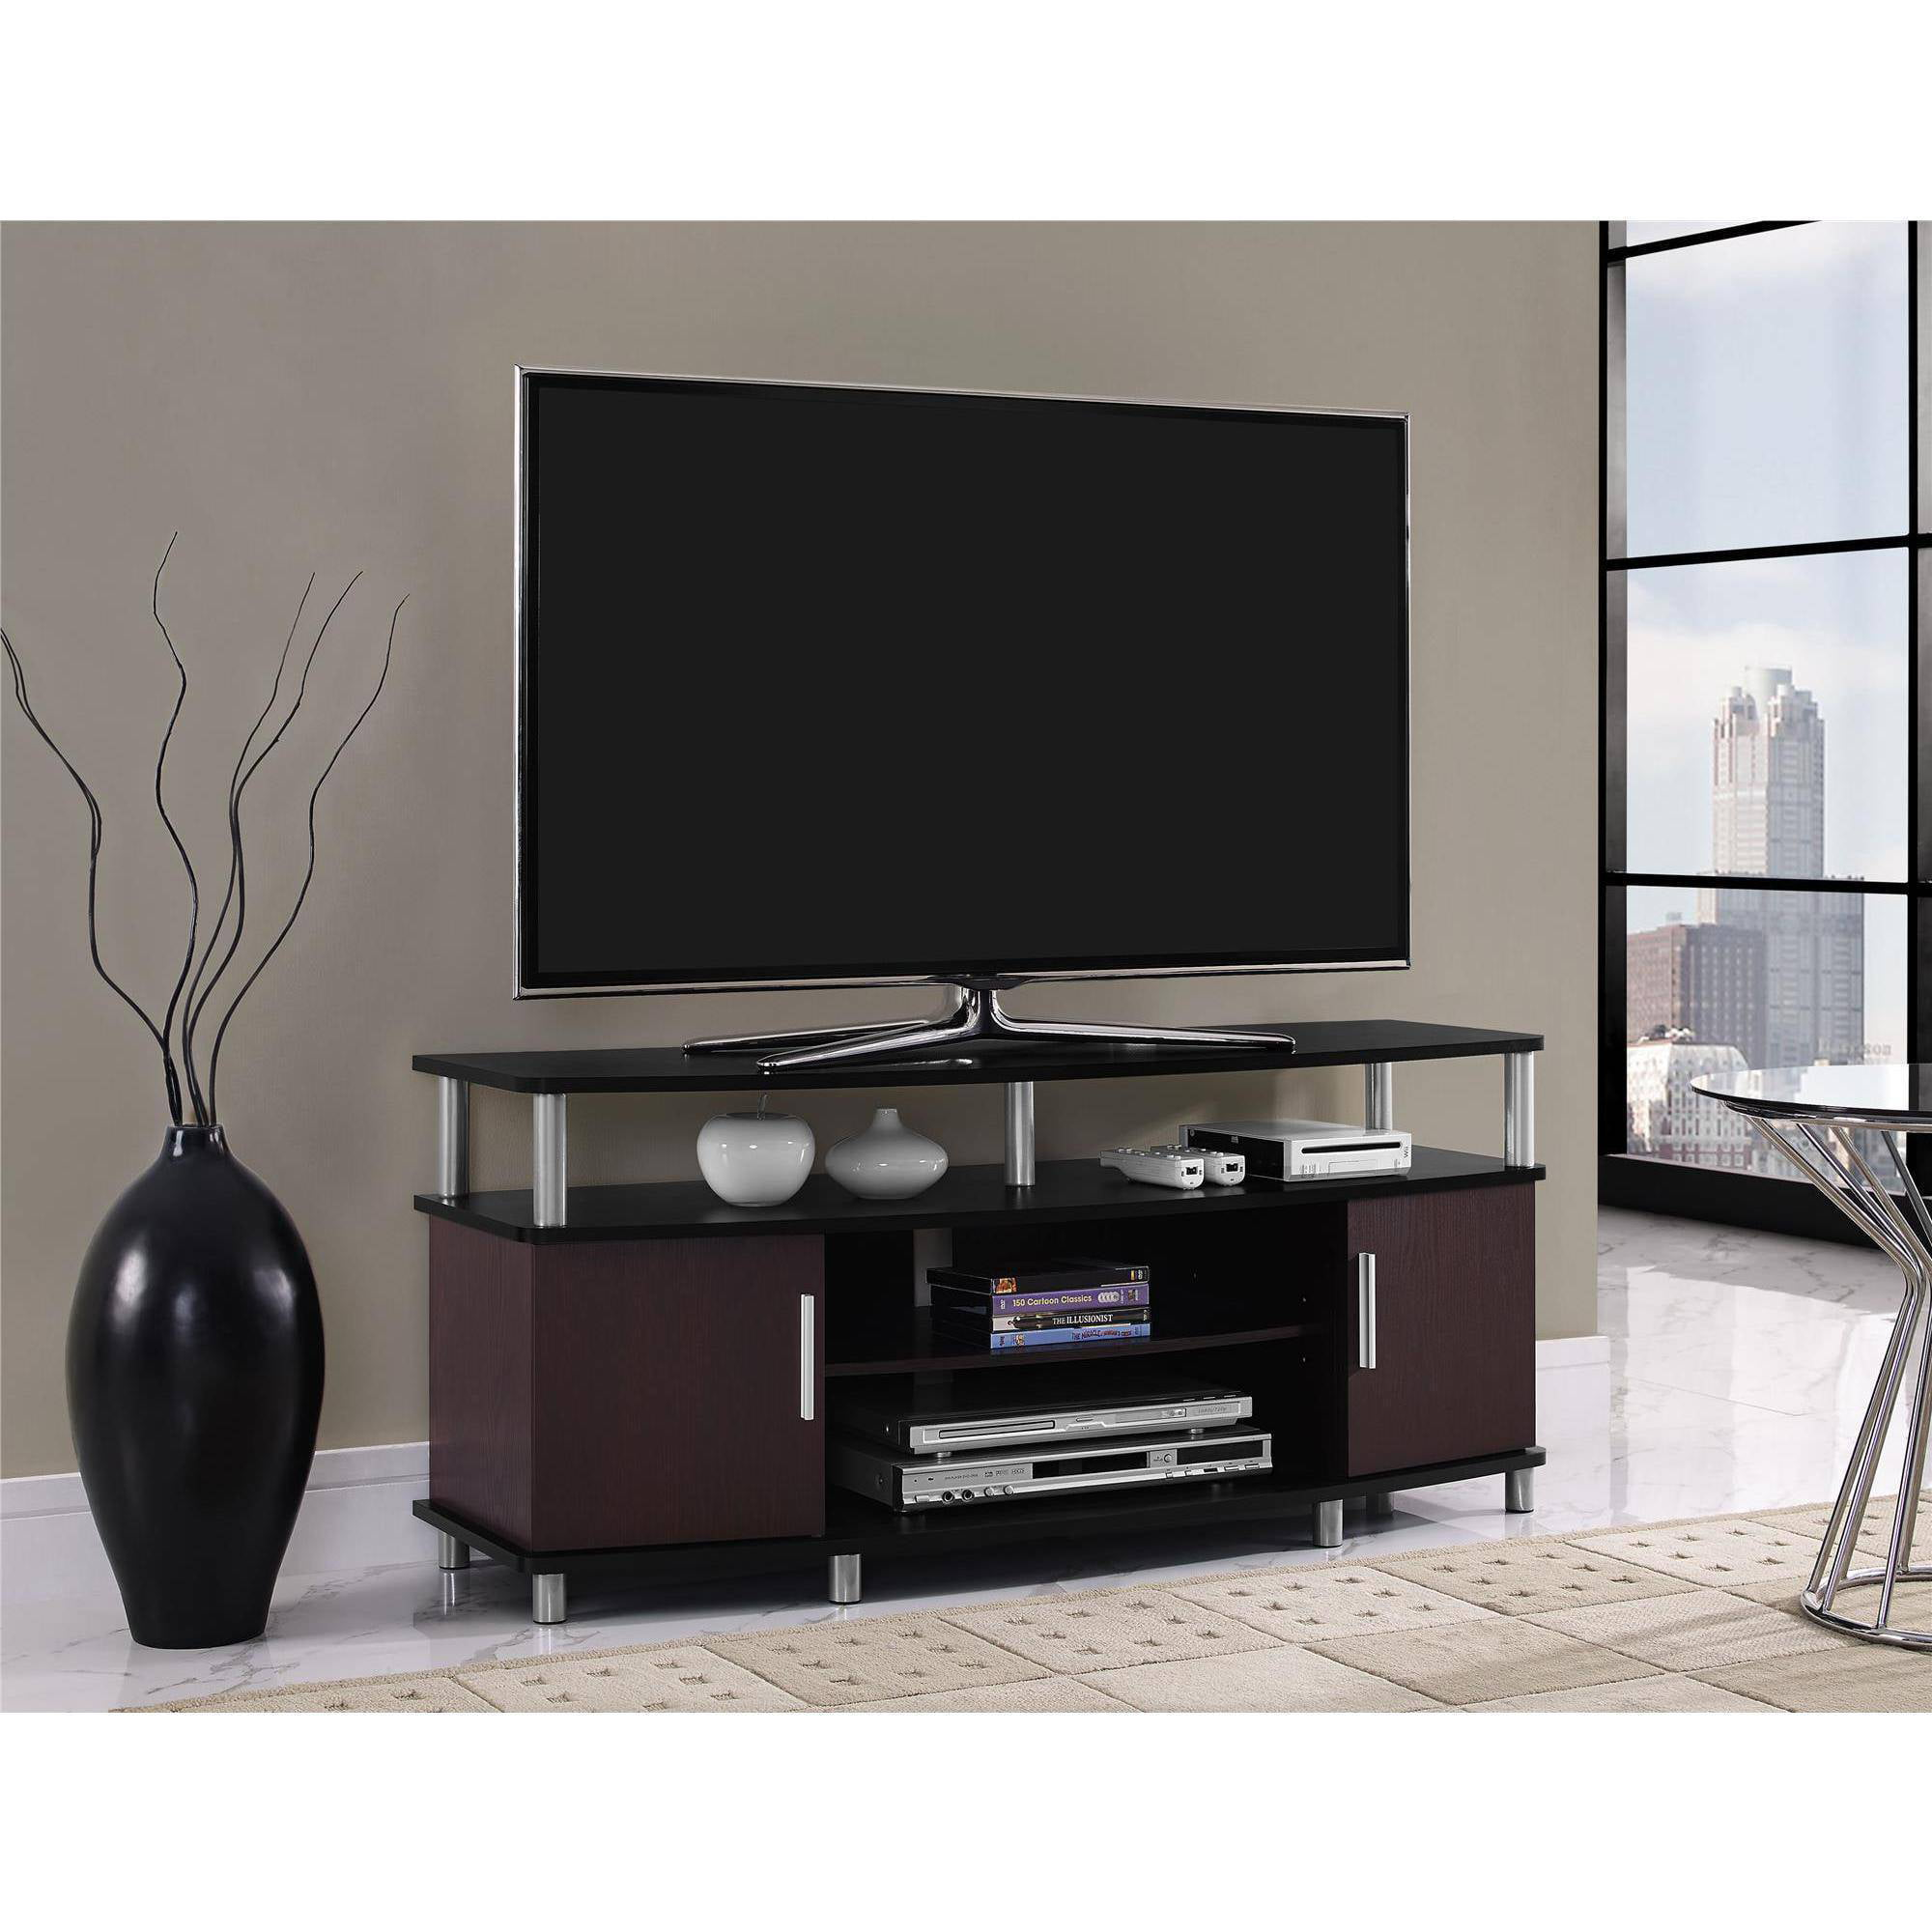 TV Stands | TV Cabinets - Sears